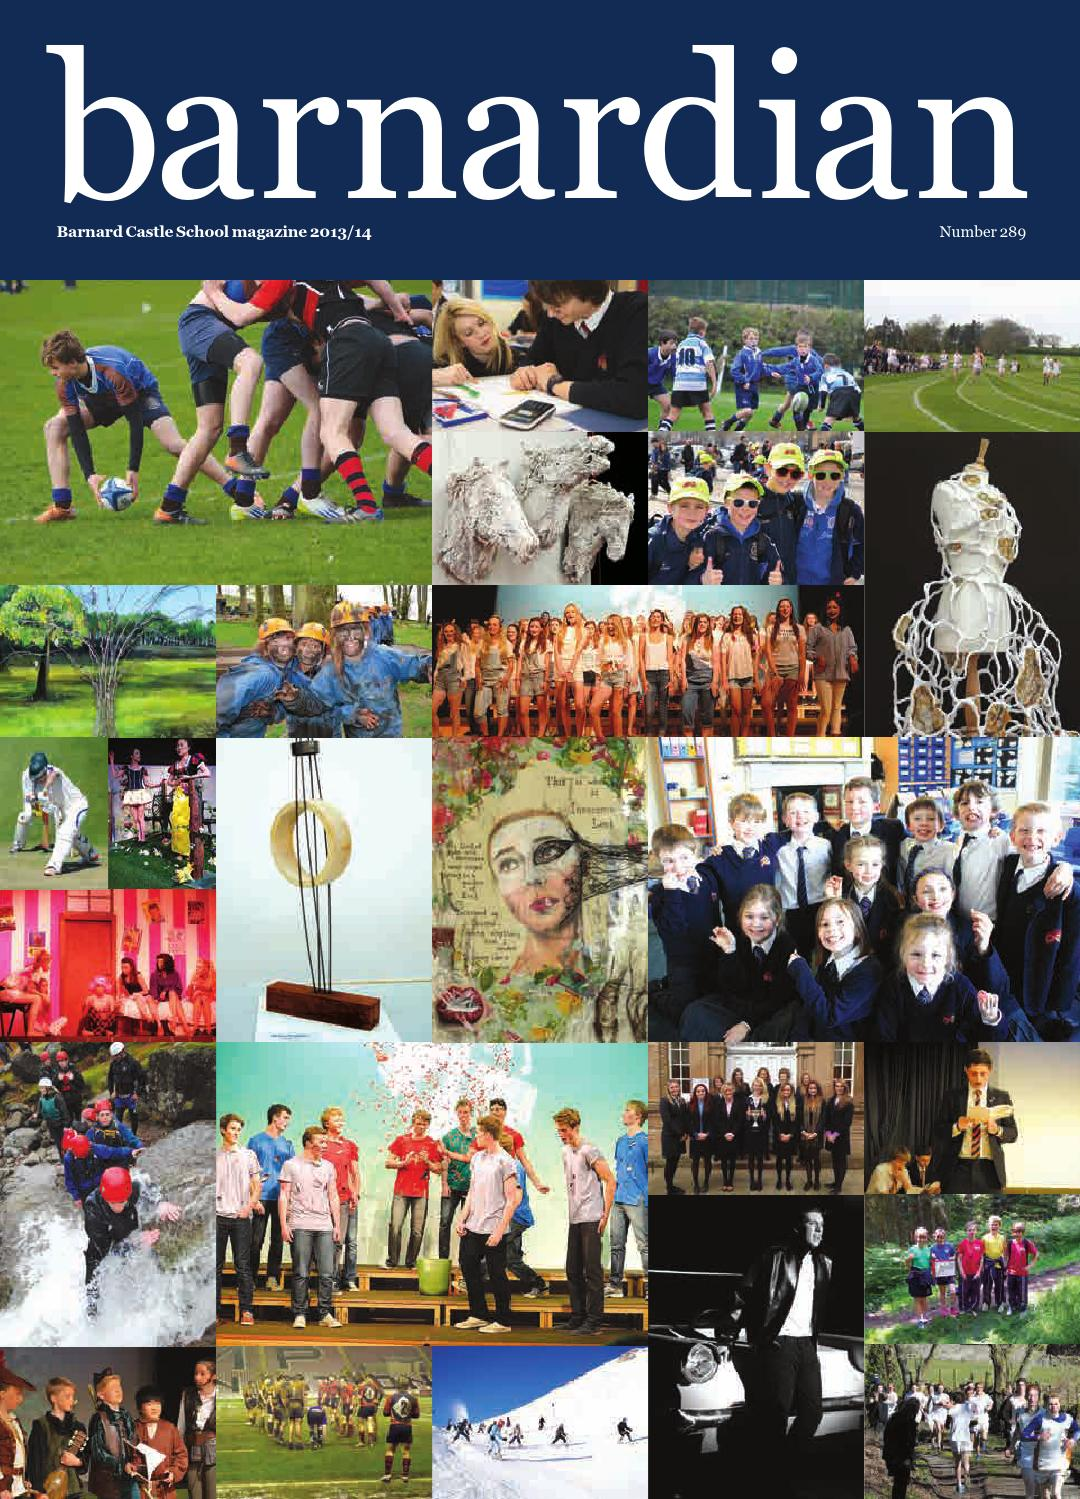 Barnardian magazine 2013/14 by Barnard Castle School - issuu